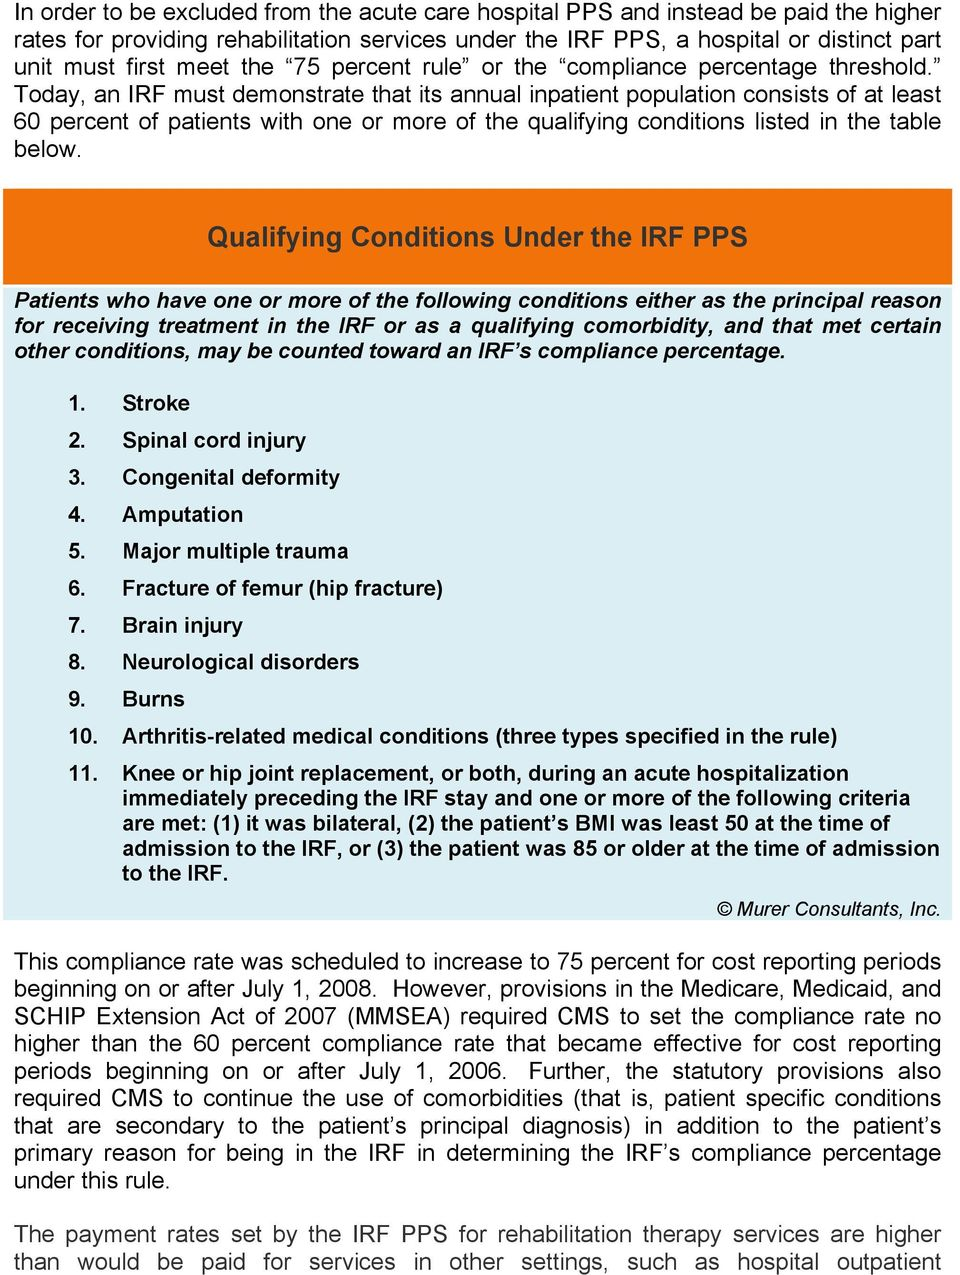 Today, an IRF must demonstrate that its annual inpatient population consists of at least 60 percent of patients with one or more of the qualifying conditions listed in the table below.